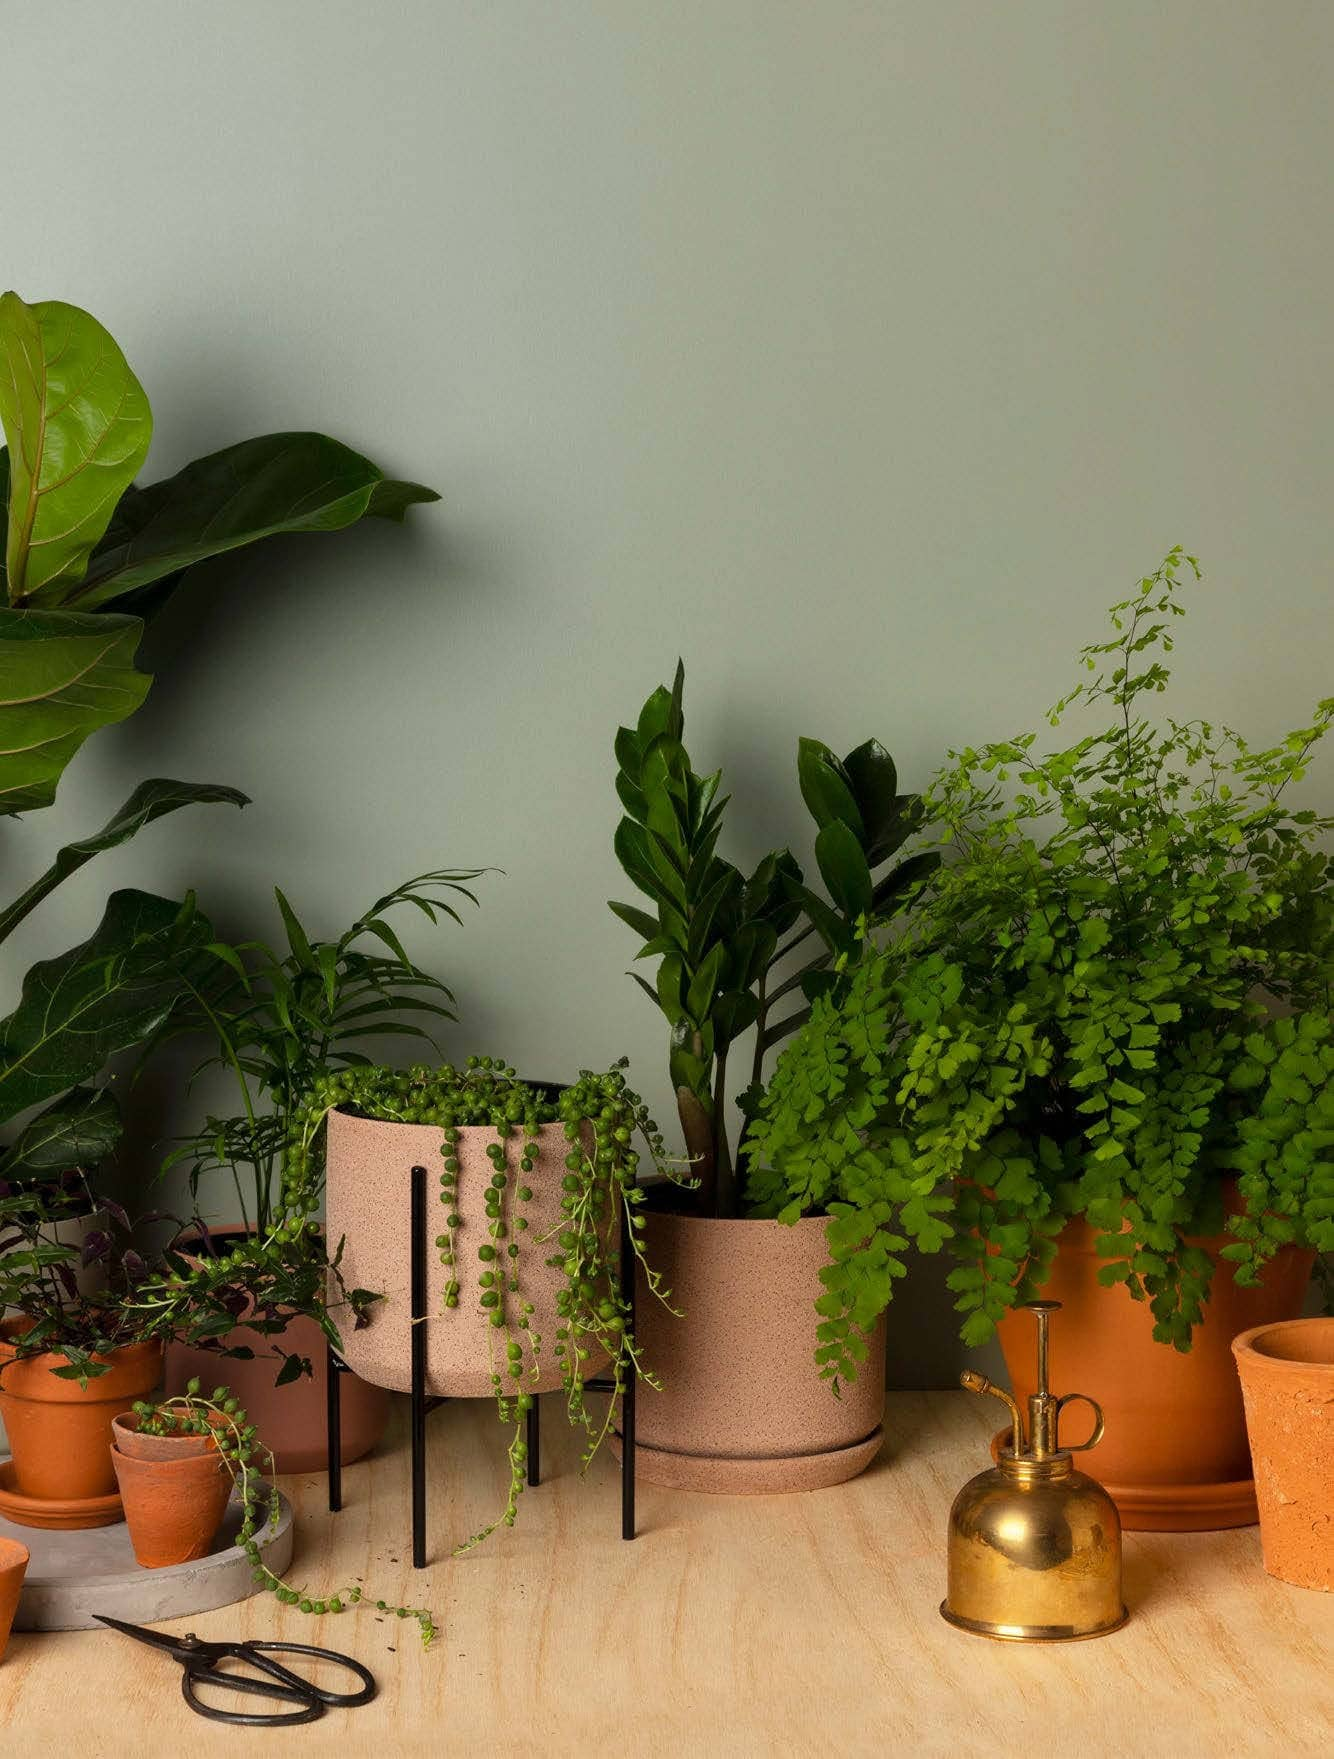 Top 10 Indoor Plants (And How To Keep Them Alive)